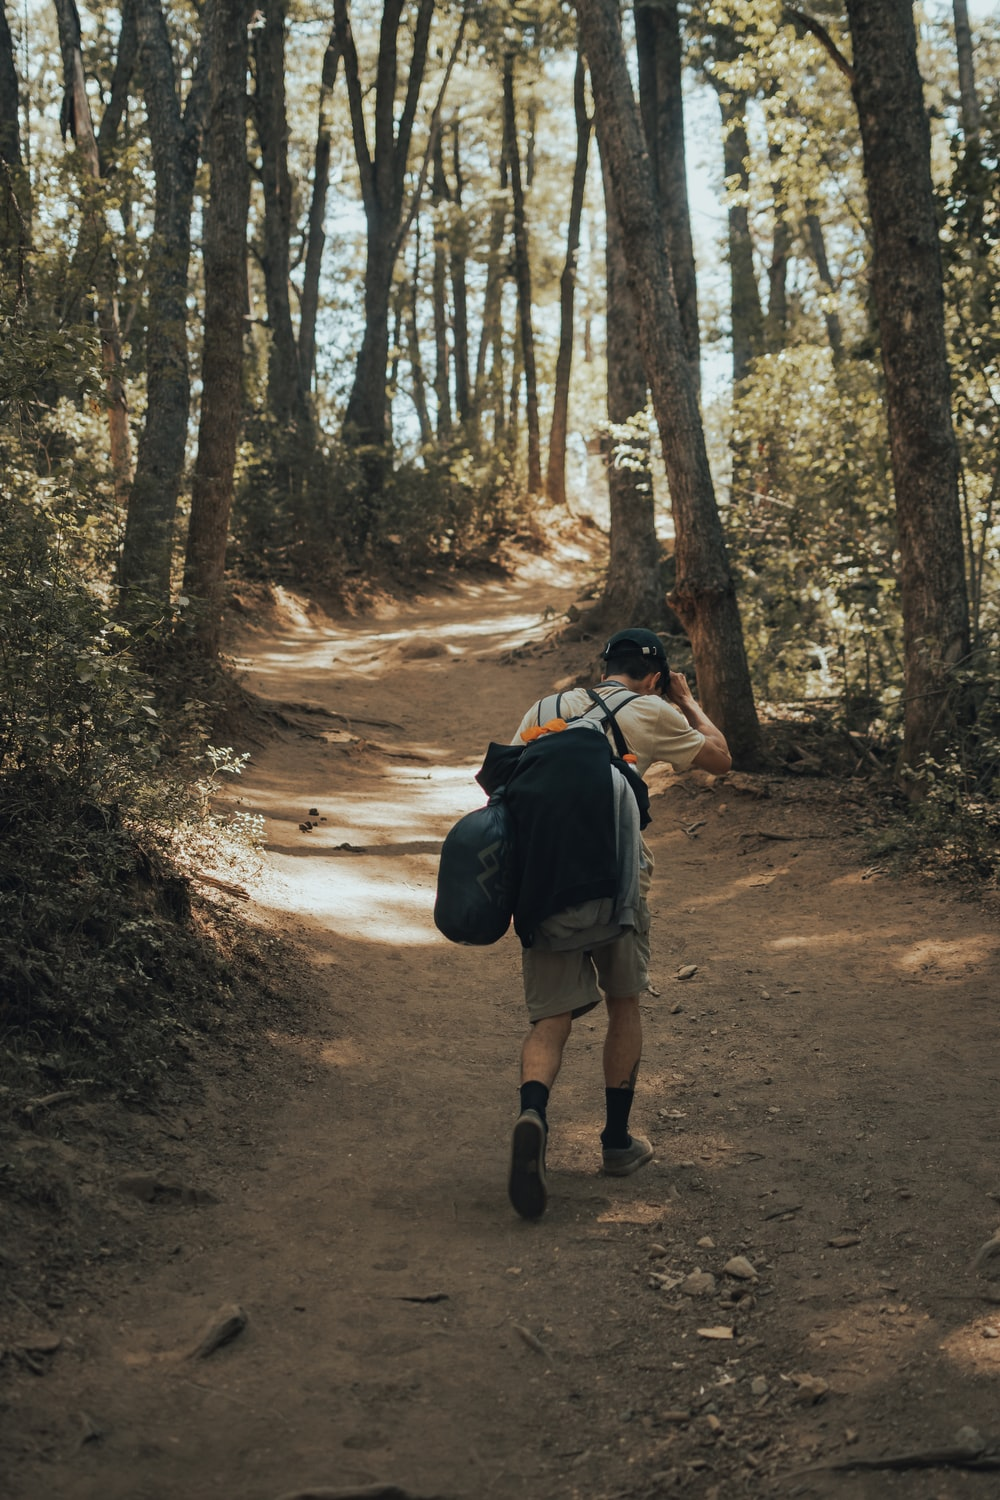 woman in blue jacket and black pants with backpack walking on dirt road between trees during